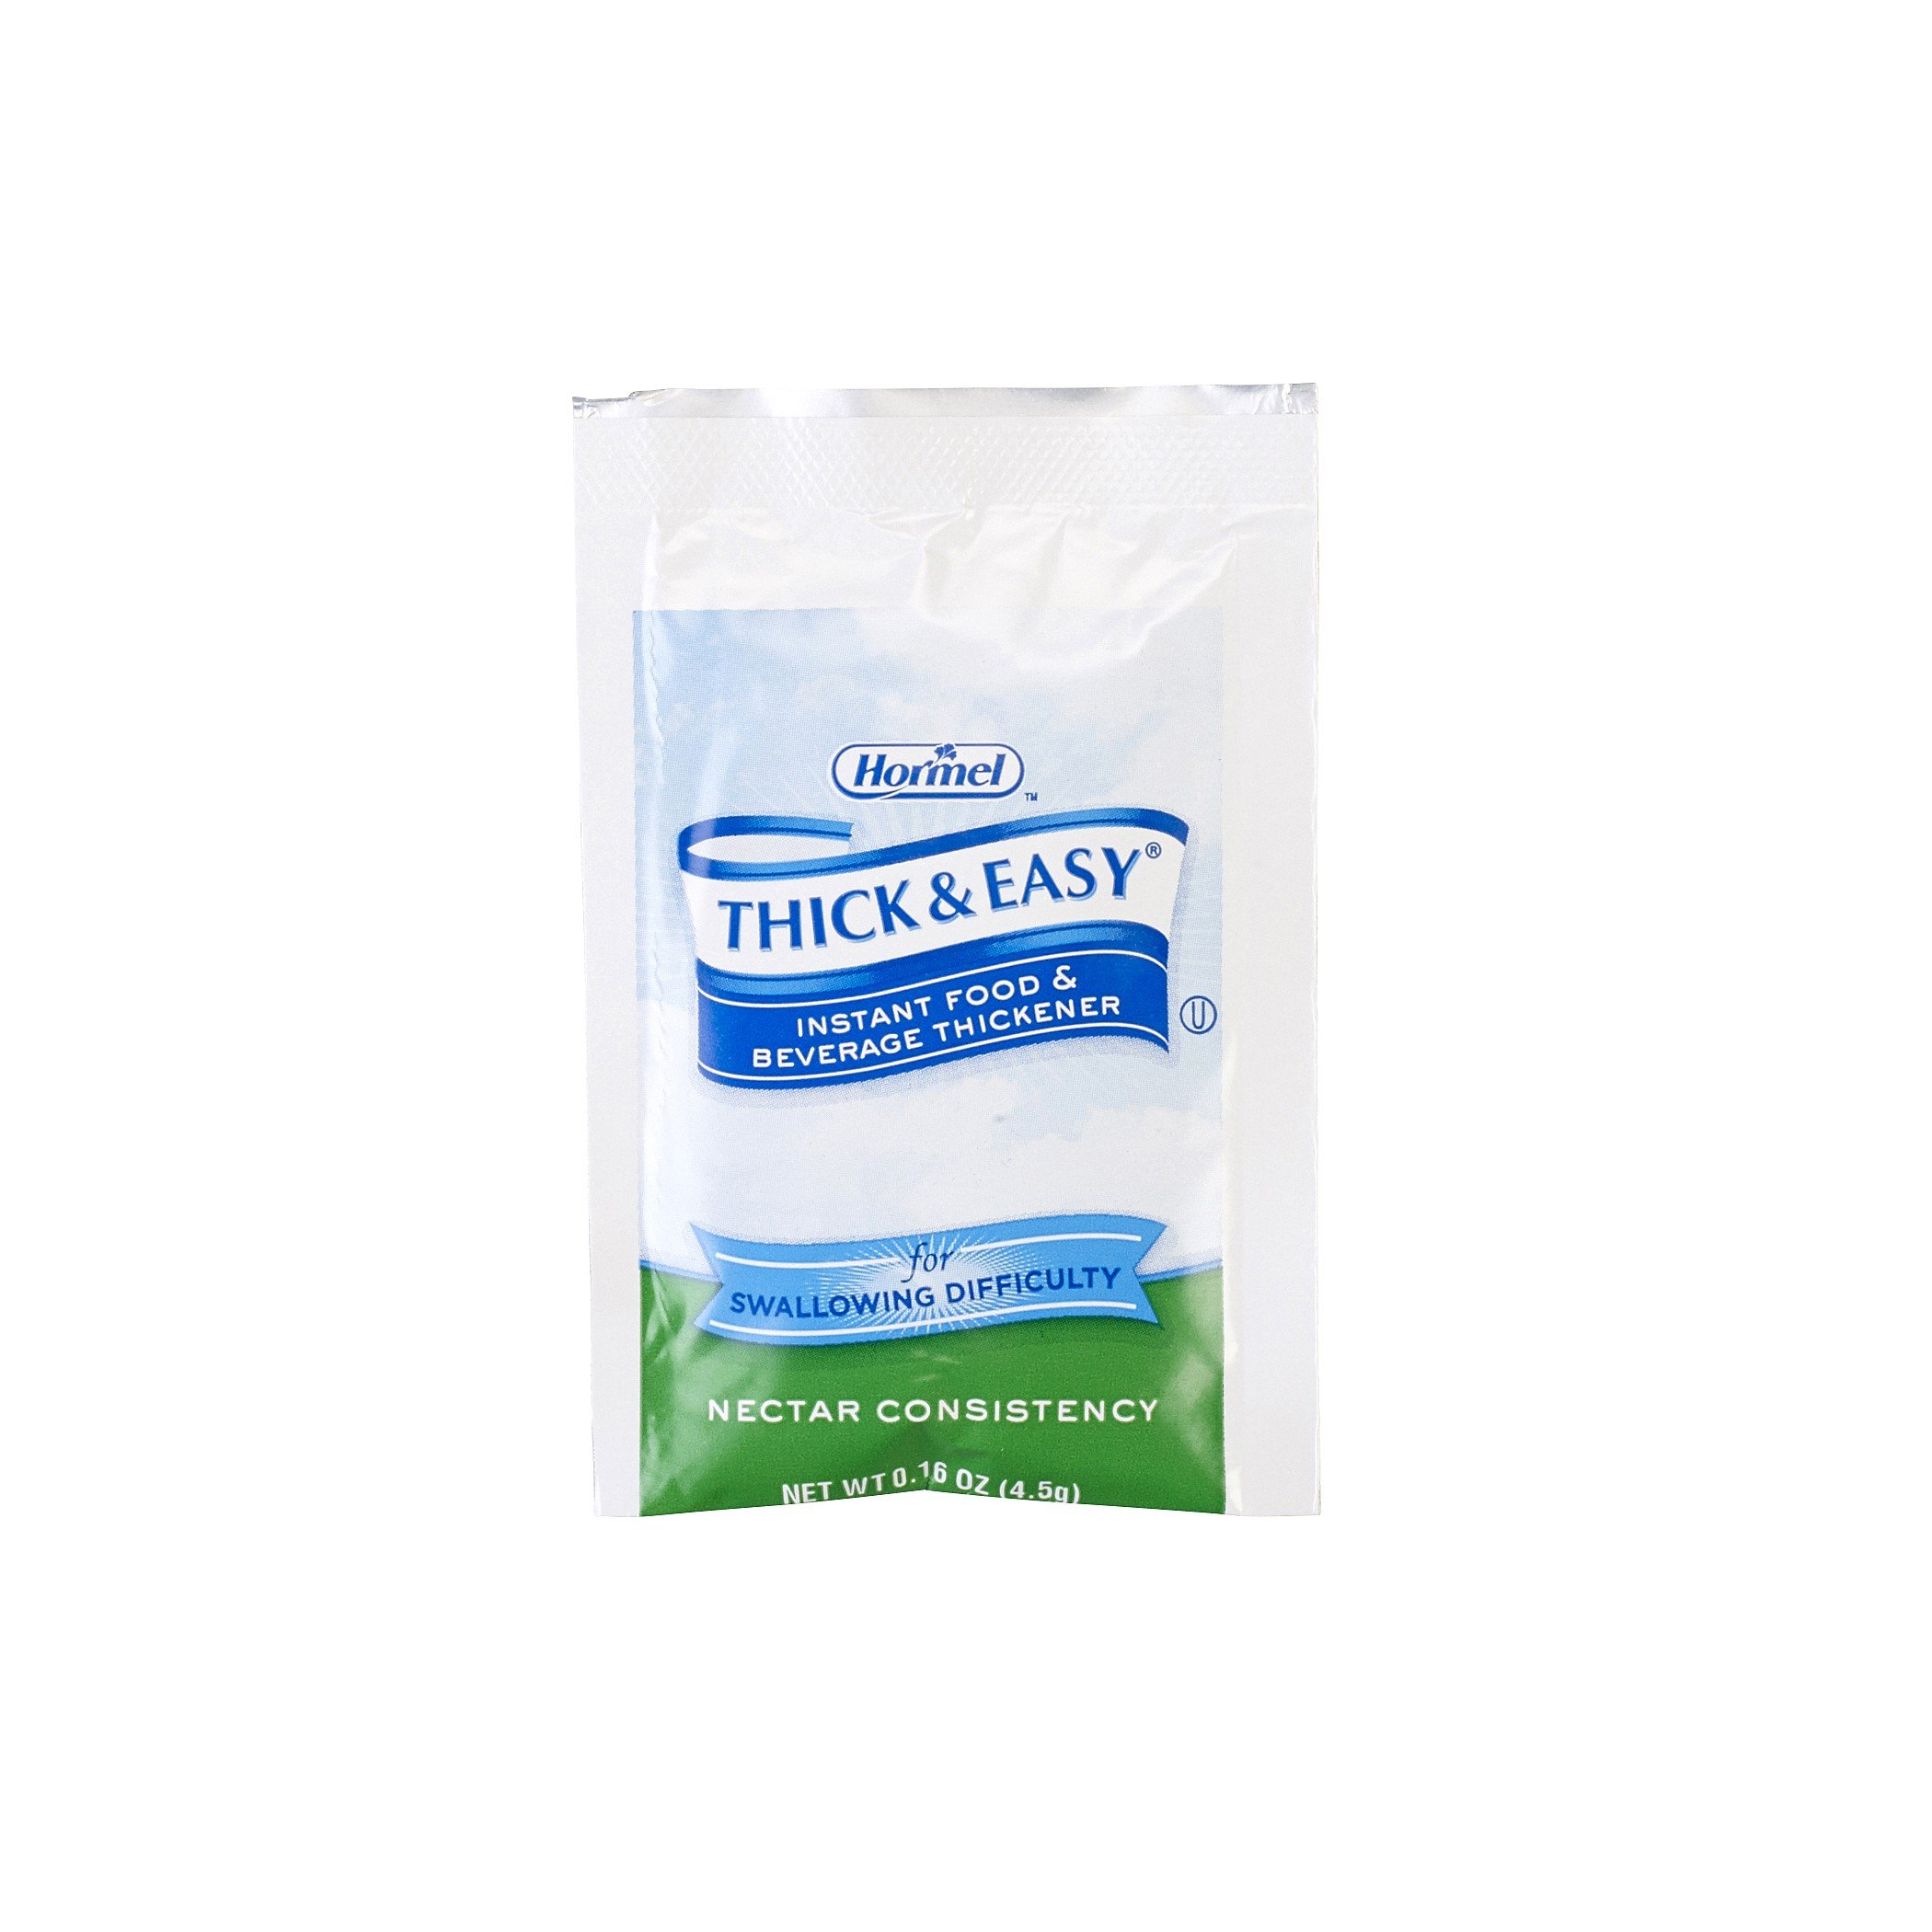 Thick & Easy Food Thickener Nectar Packets, 4.5g, 100/pk by Rolyn Prest